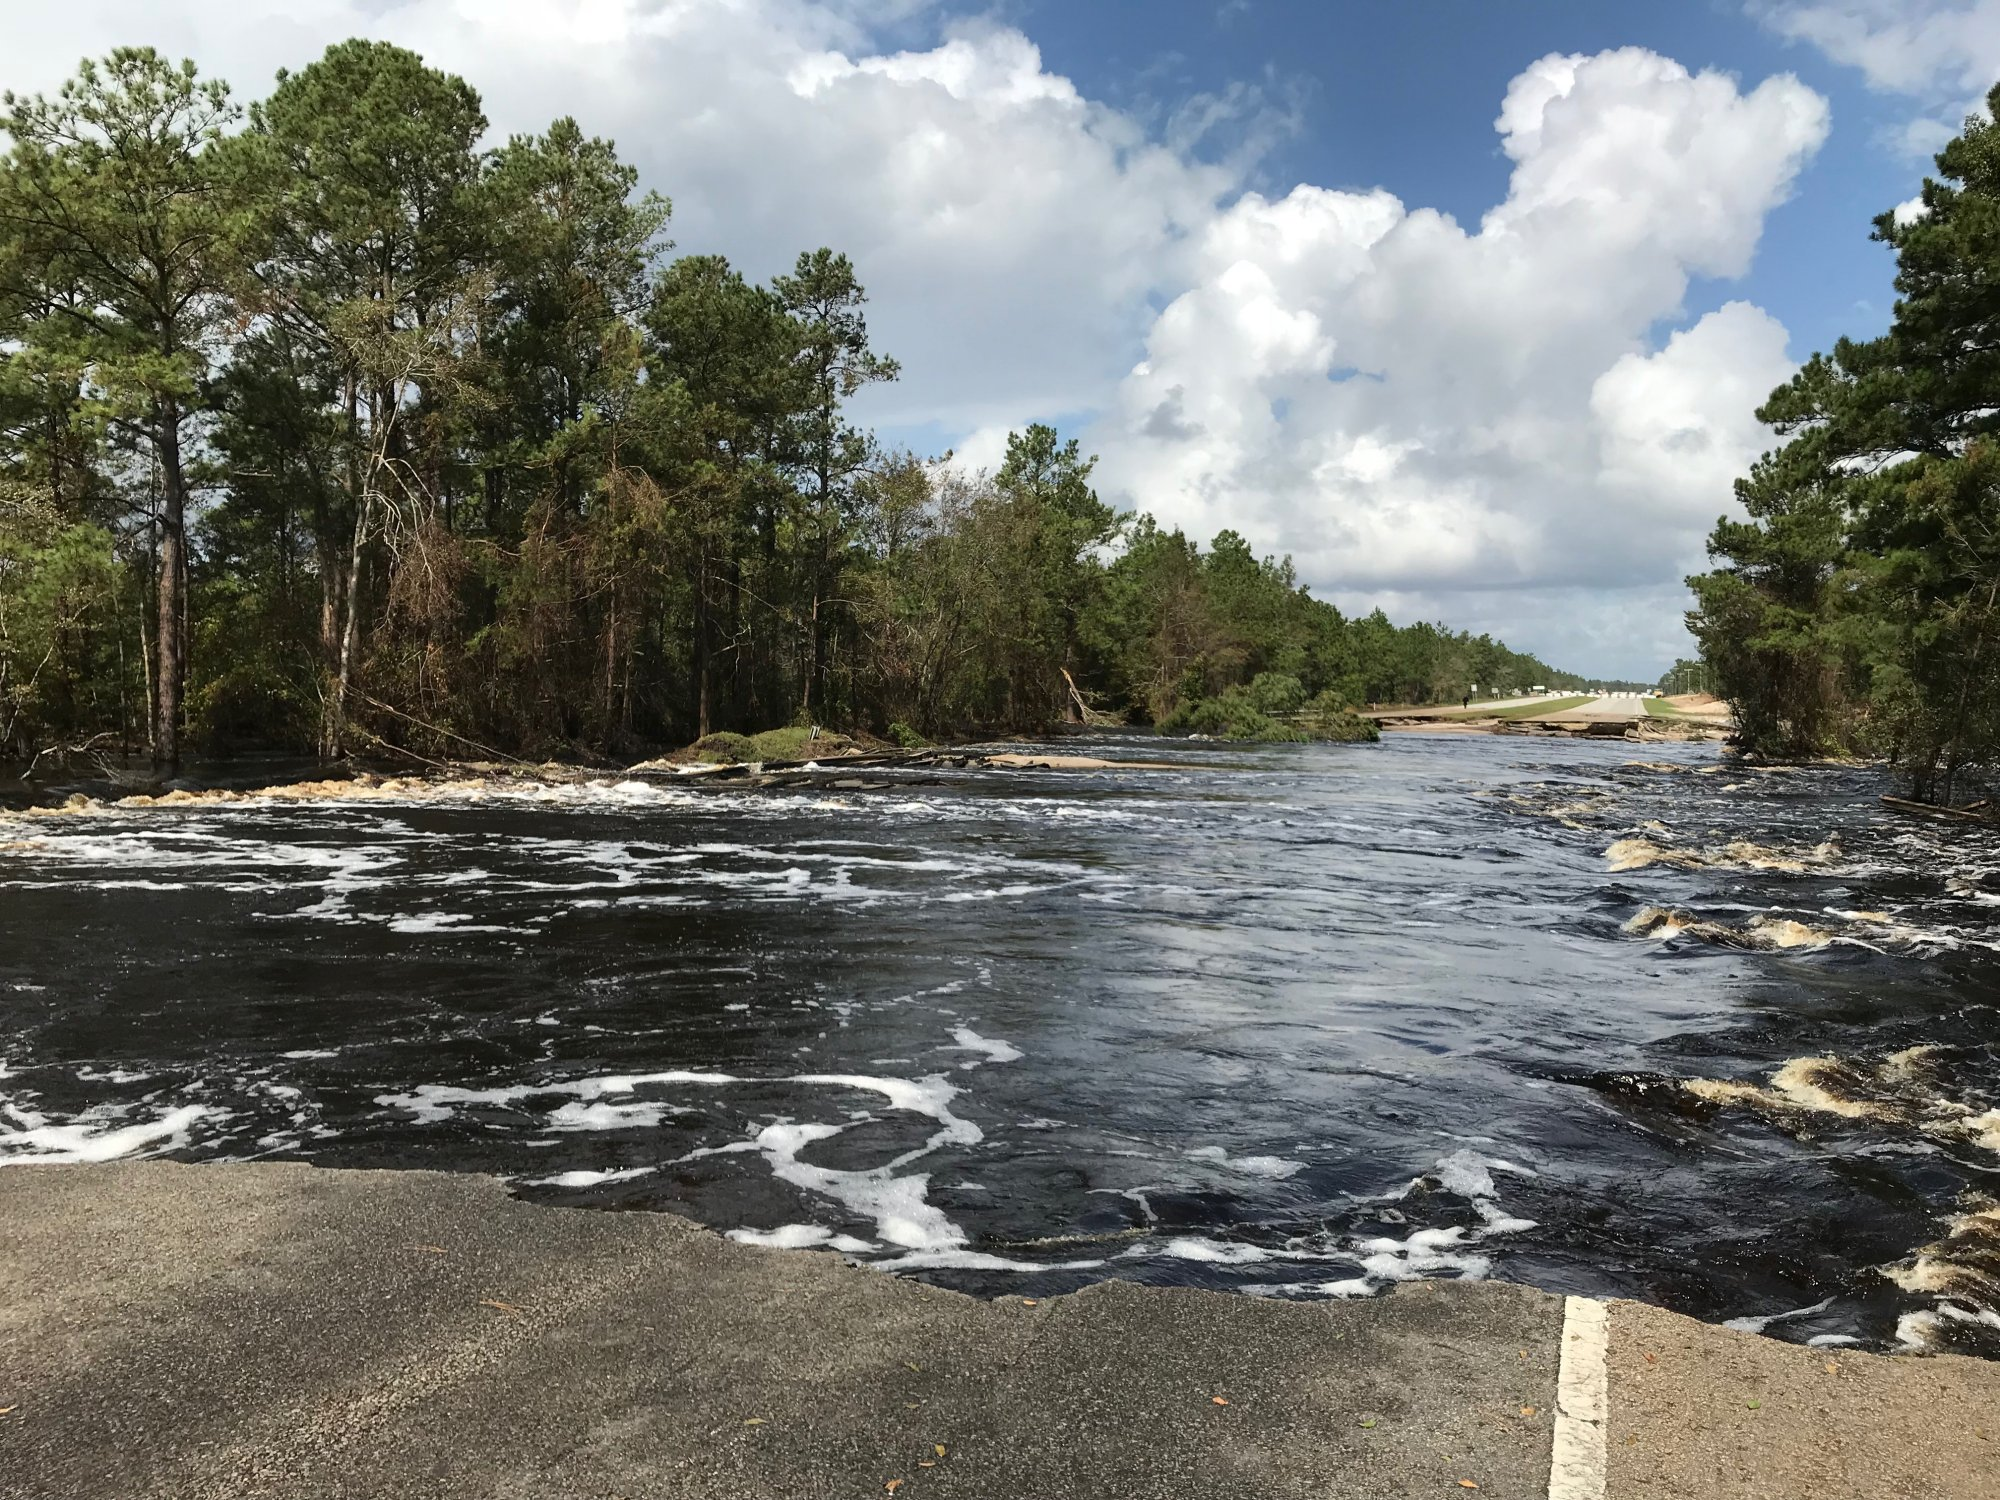 The Cape Fear River scoured out a section of US Highway 421 near the New Hanover/Pender county line.  Record-high levels on the Cape Fear allowed water to overtop the highway and flow down into the adjacent Northeast Cape Fear River basin. (Photo credit: Rick Neuherz/NWS)